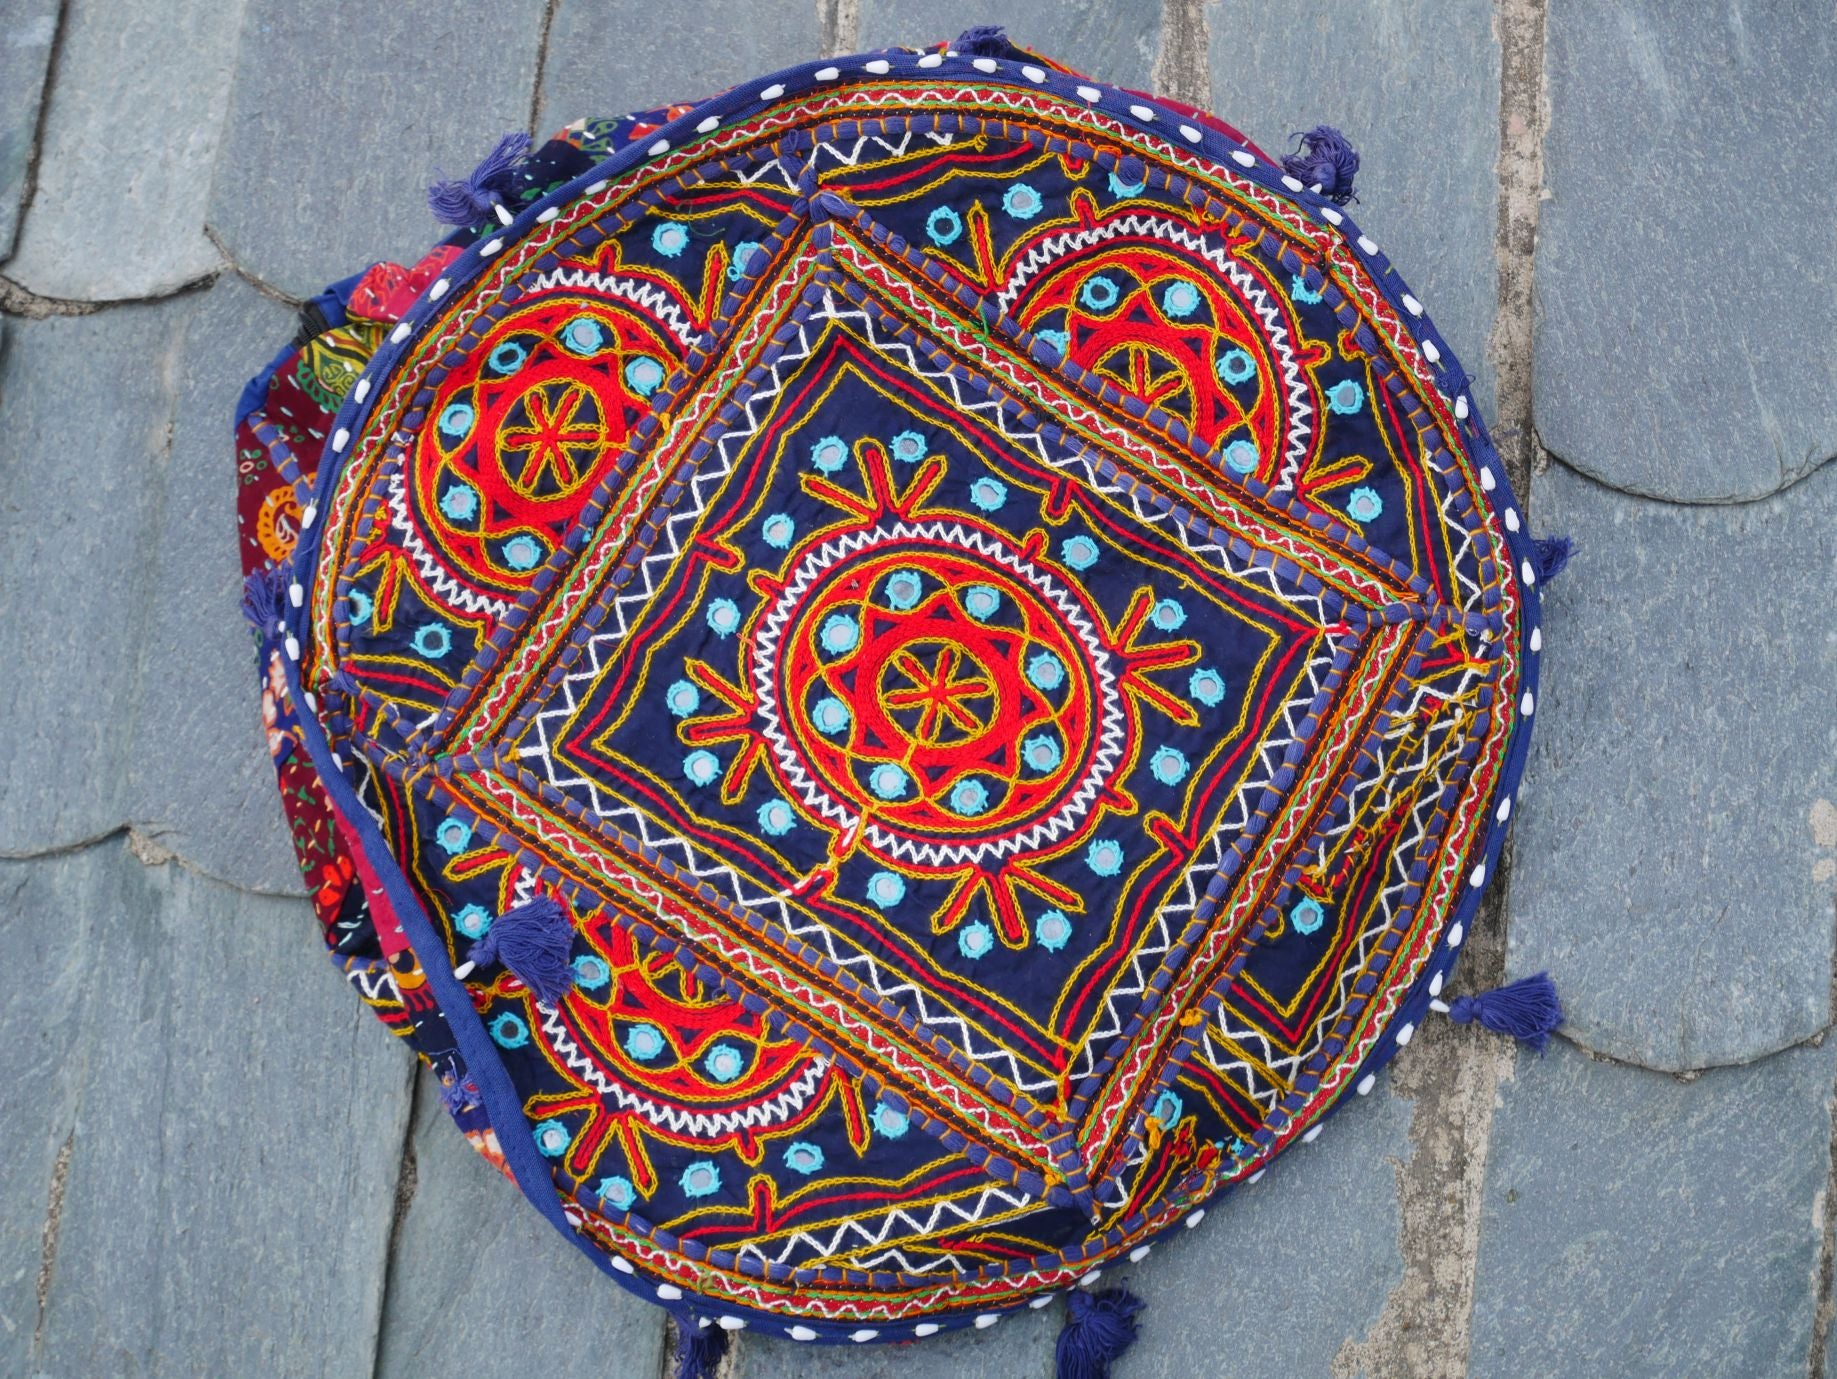 Floor pouf - floor cushion cover - Indian floor seating - patchwork floor pillow - Dark blue embroidered